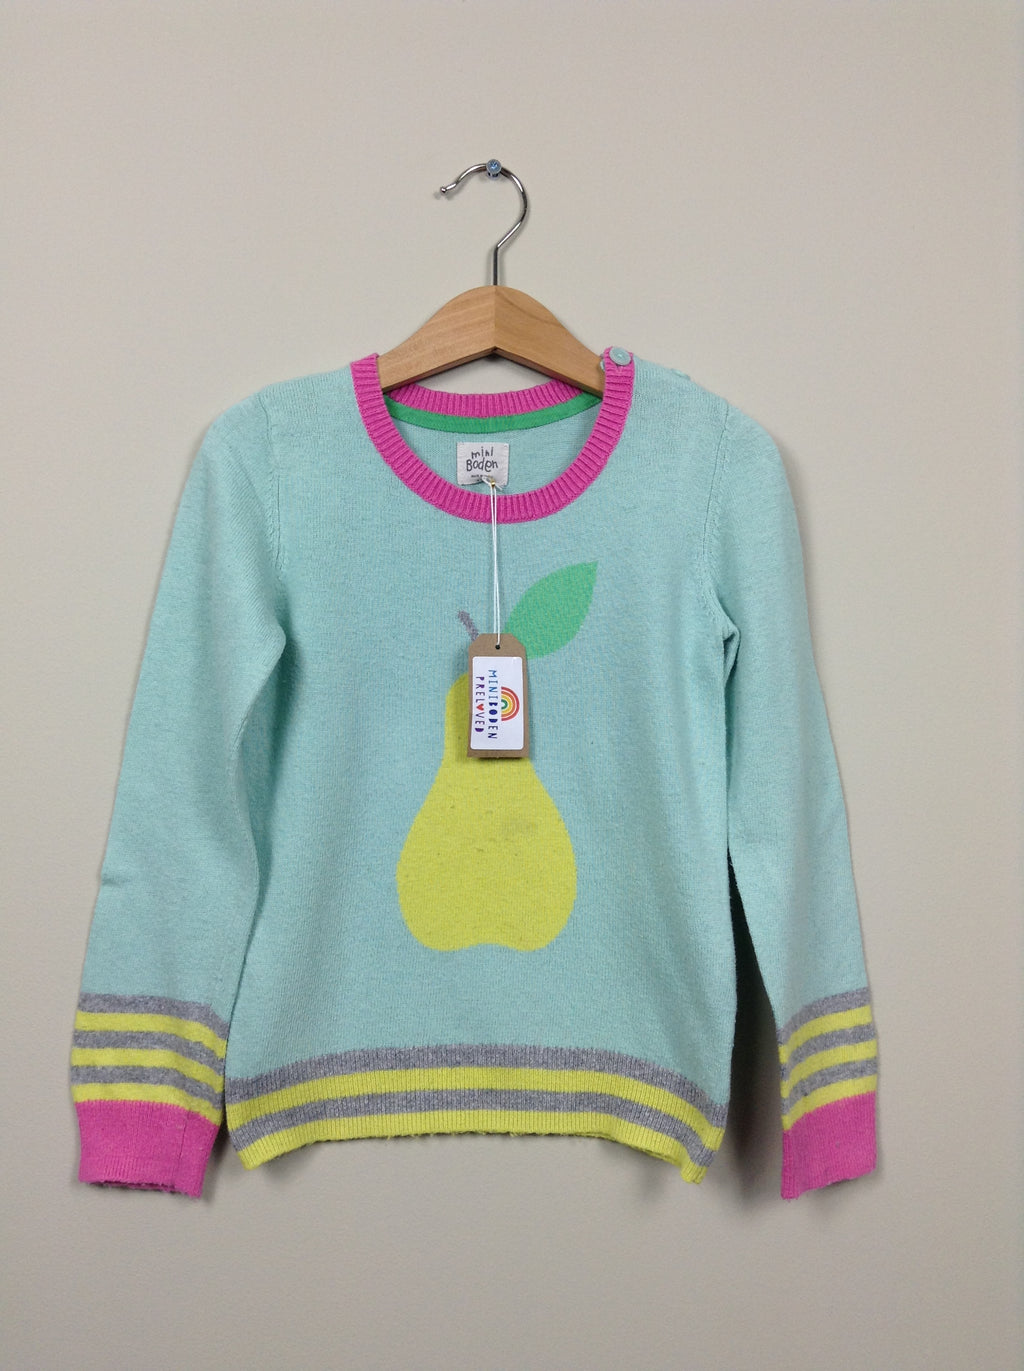 Gorgeous Pear Print Knitted Jumper (Age 4-5 Years)